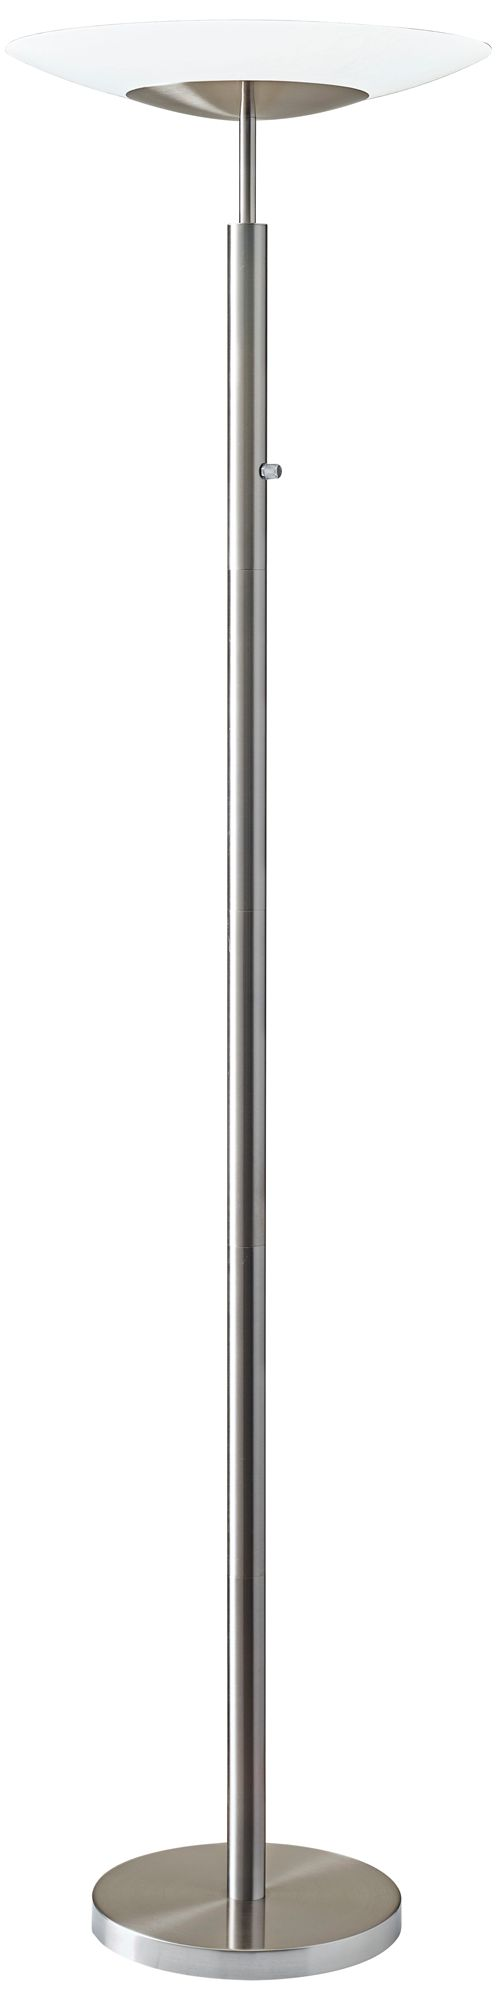 Stellar Brushed Steel LED Torchiere Floor Lamp  12W17